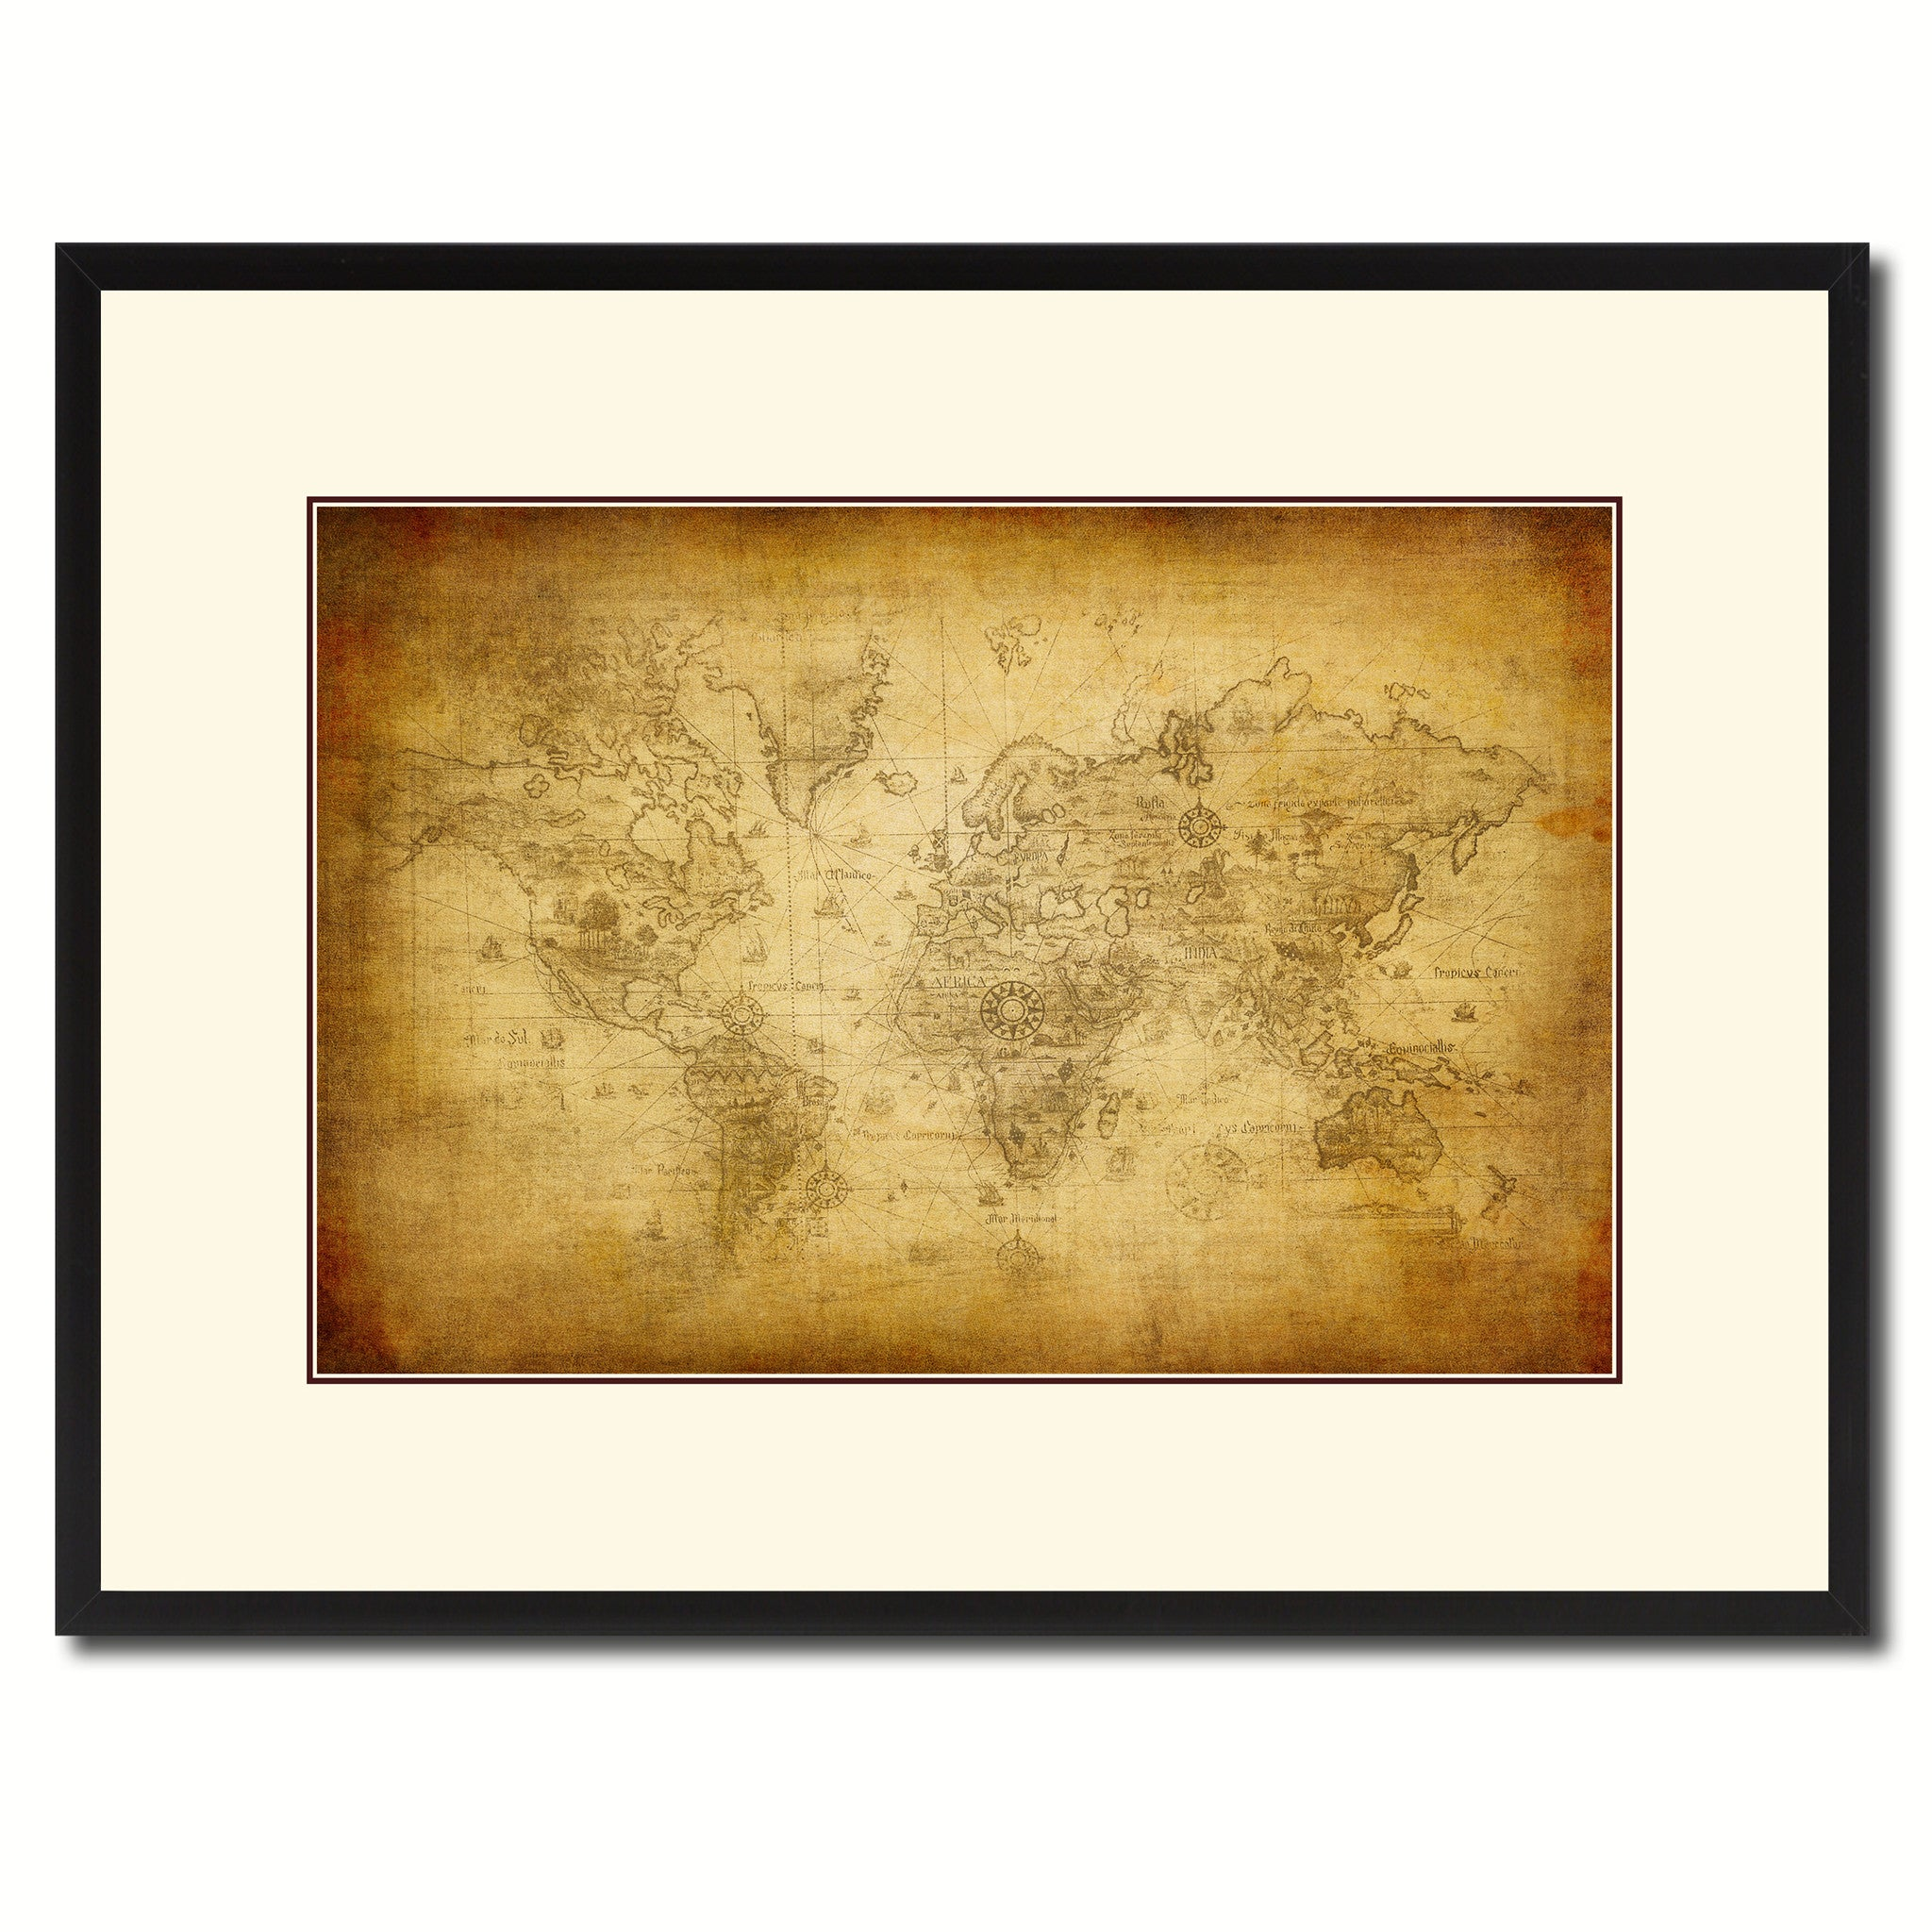 Ancient World Vintage Antique Map Wall Art Bedroom Home Decor Gift ...